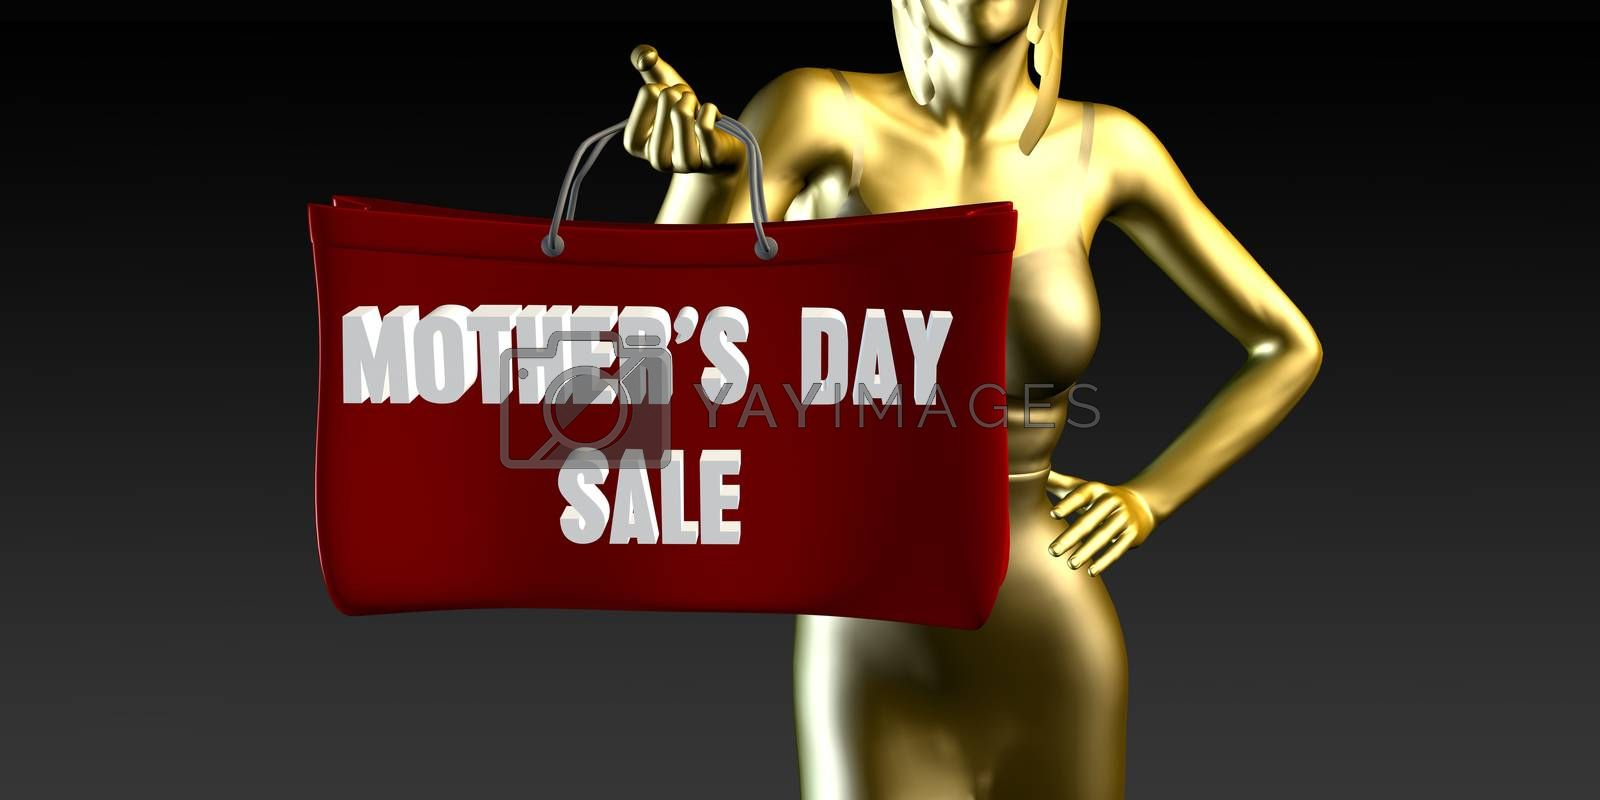 Mothers Day Sale or Sales as a Special Event